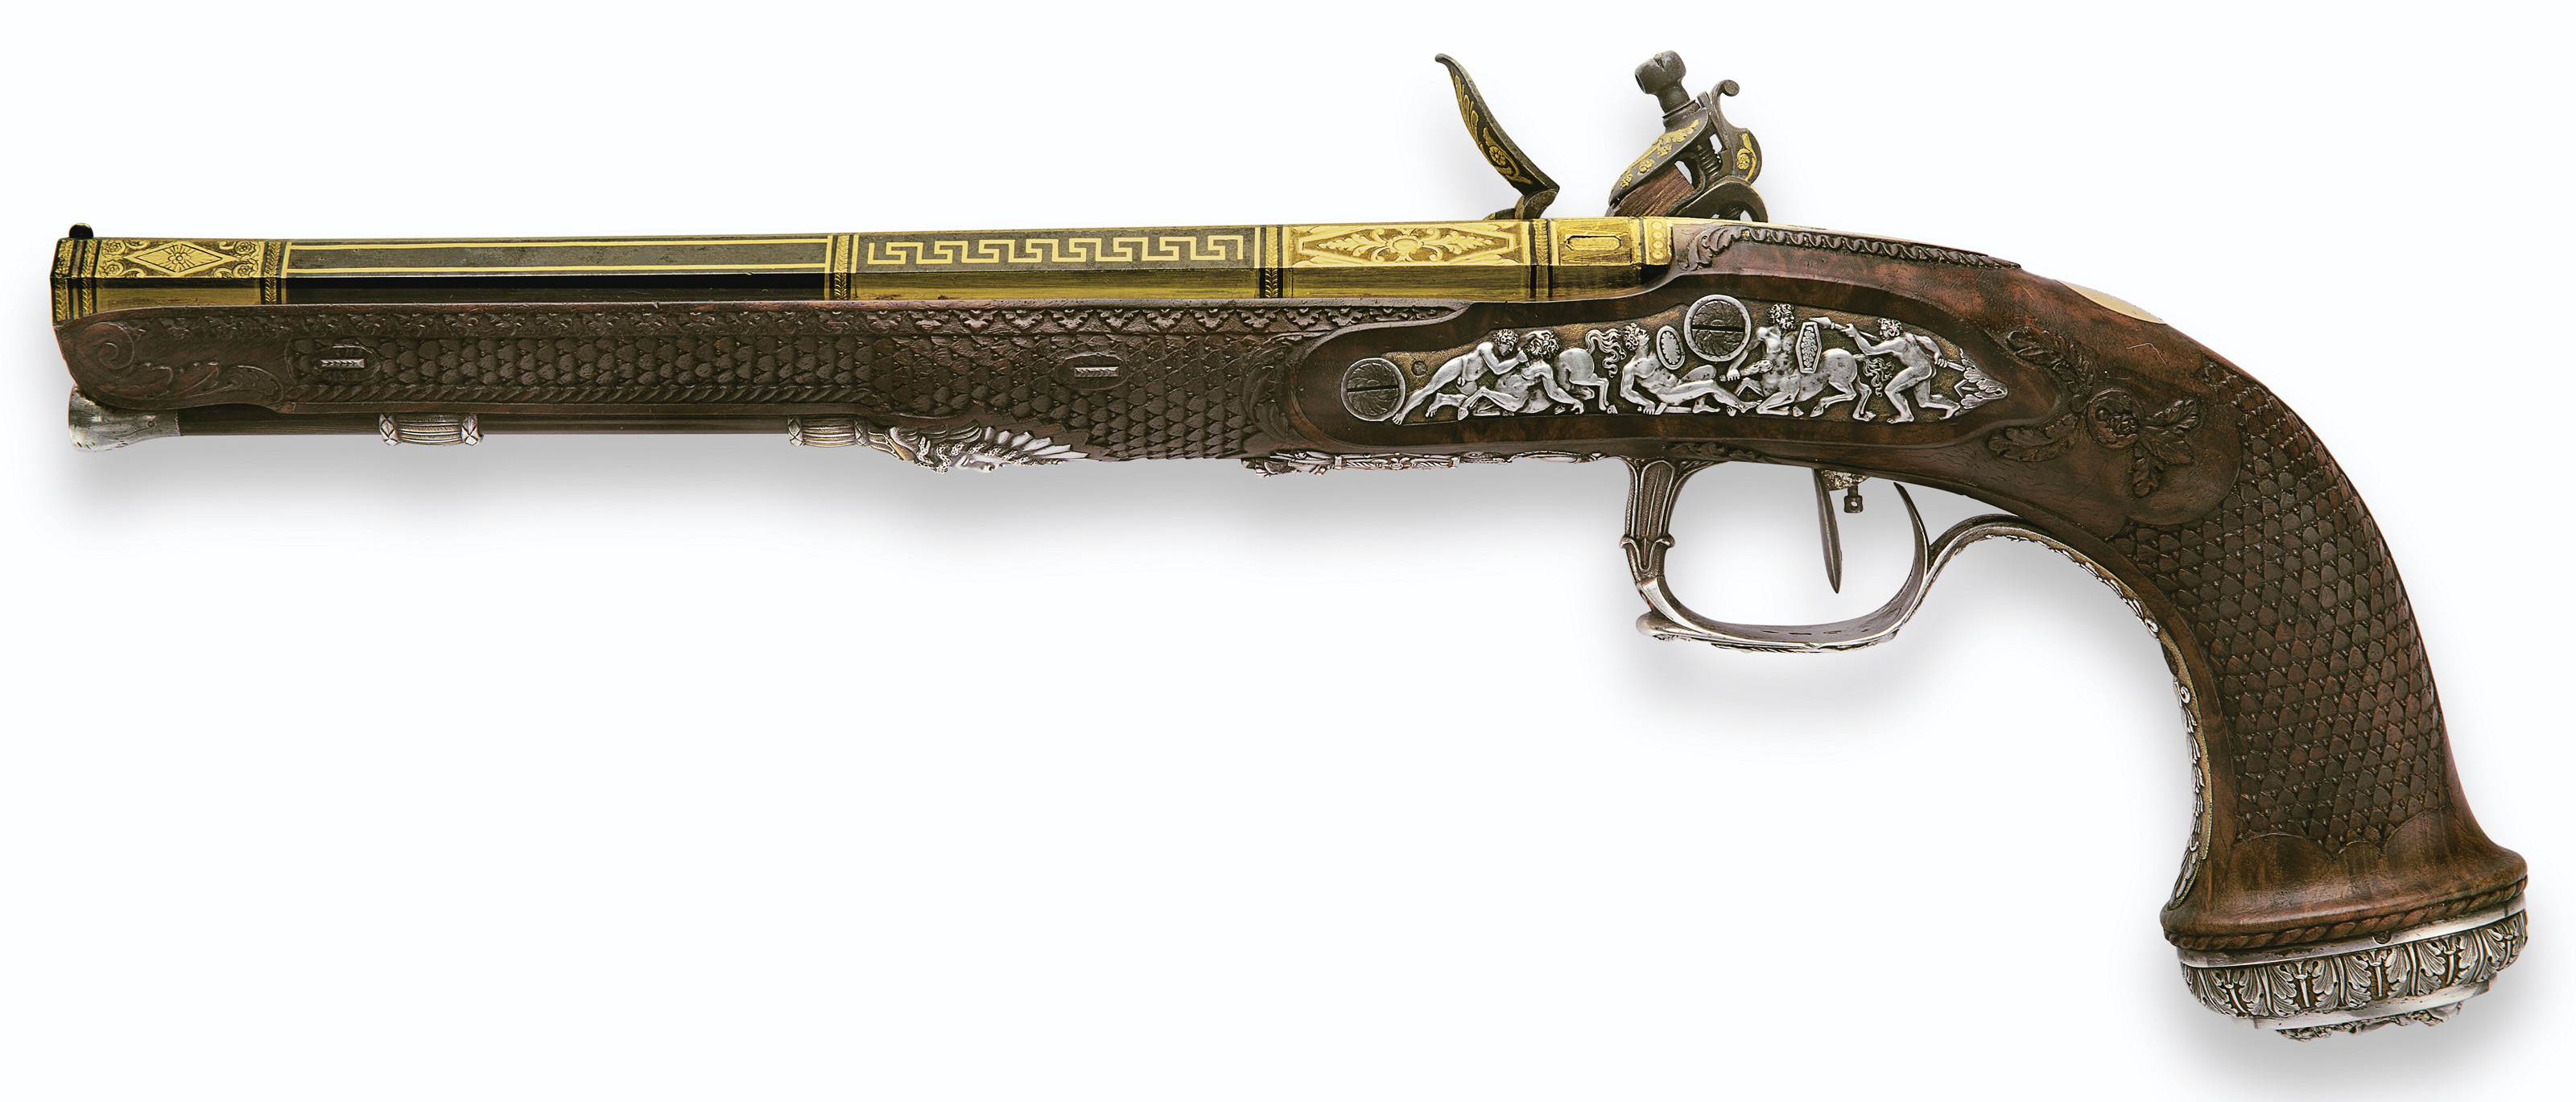 A MAGNIFICENT & IMPORTANT CASED PAIR OF FRENCH SILVER-MOUNTED RIFLED FLINTLOCK PISTOLS